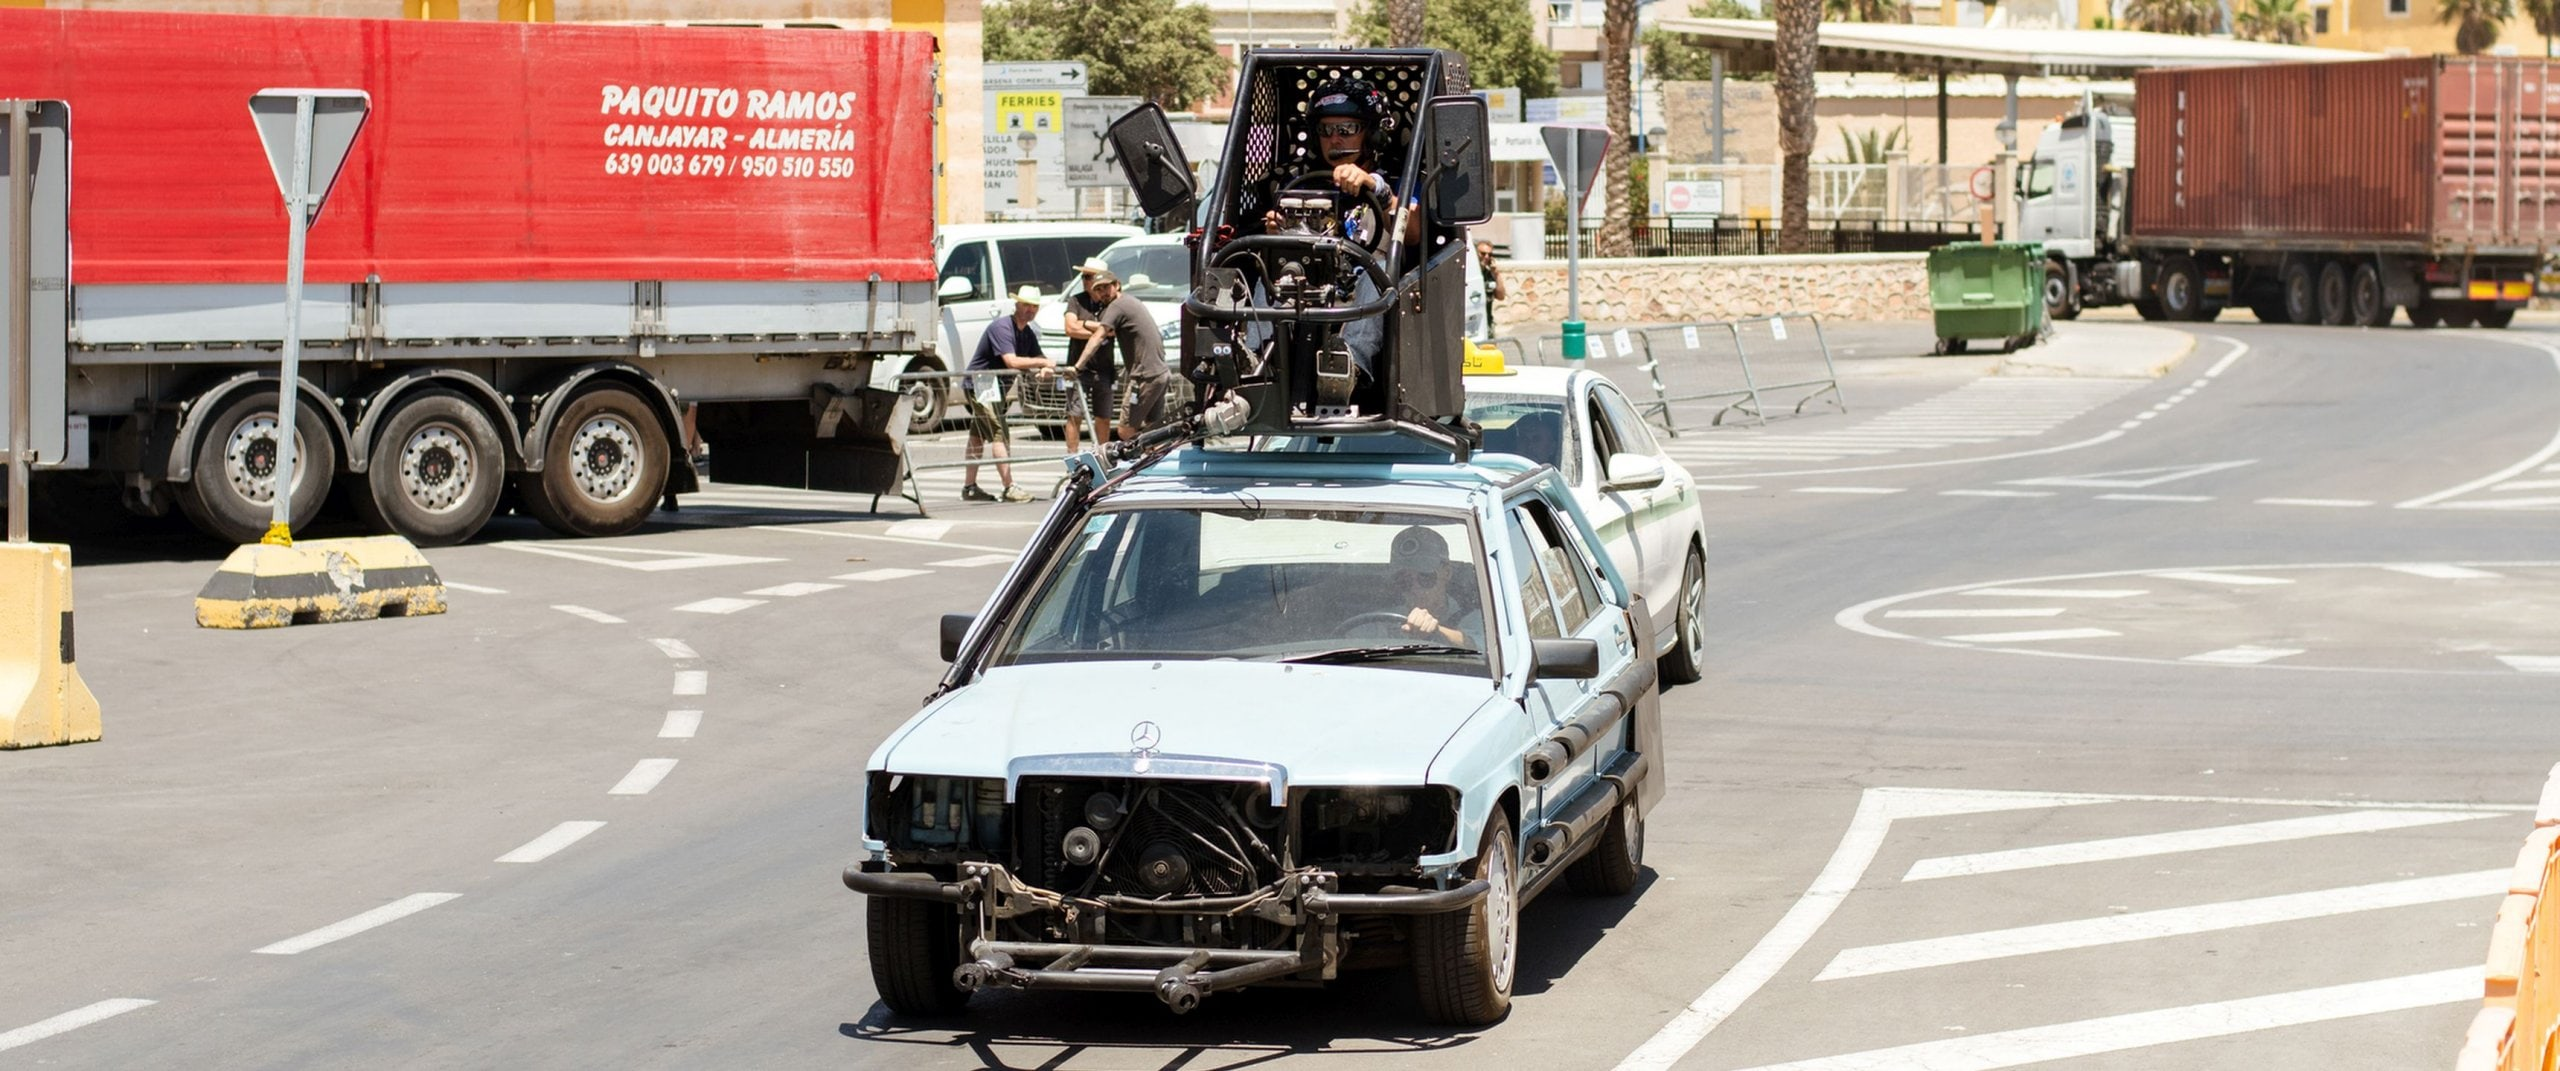 A film car based on a Mercedes-Benz E190 drives through the film set.